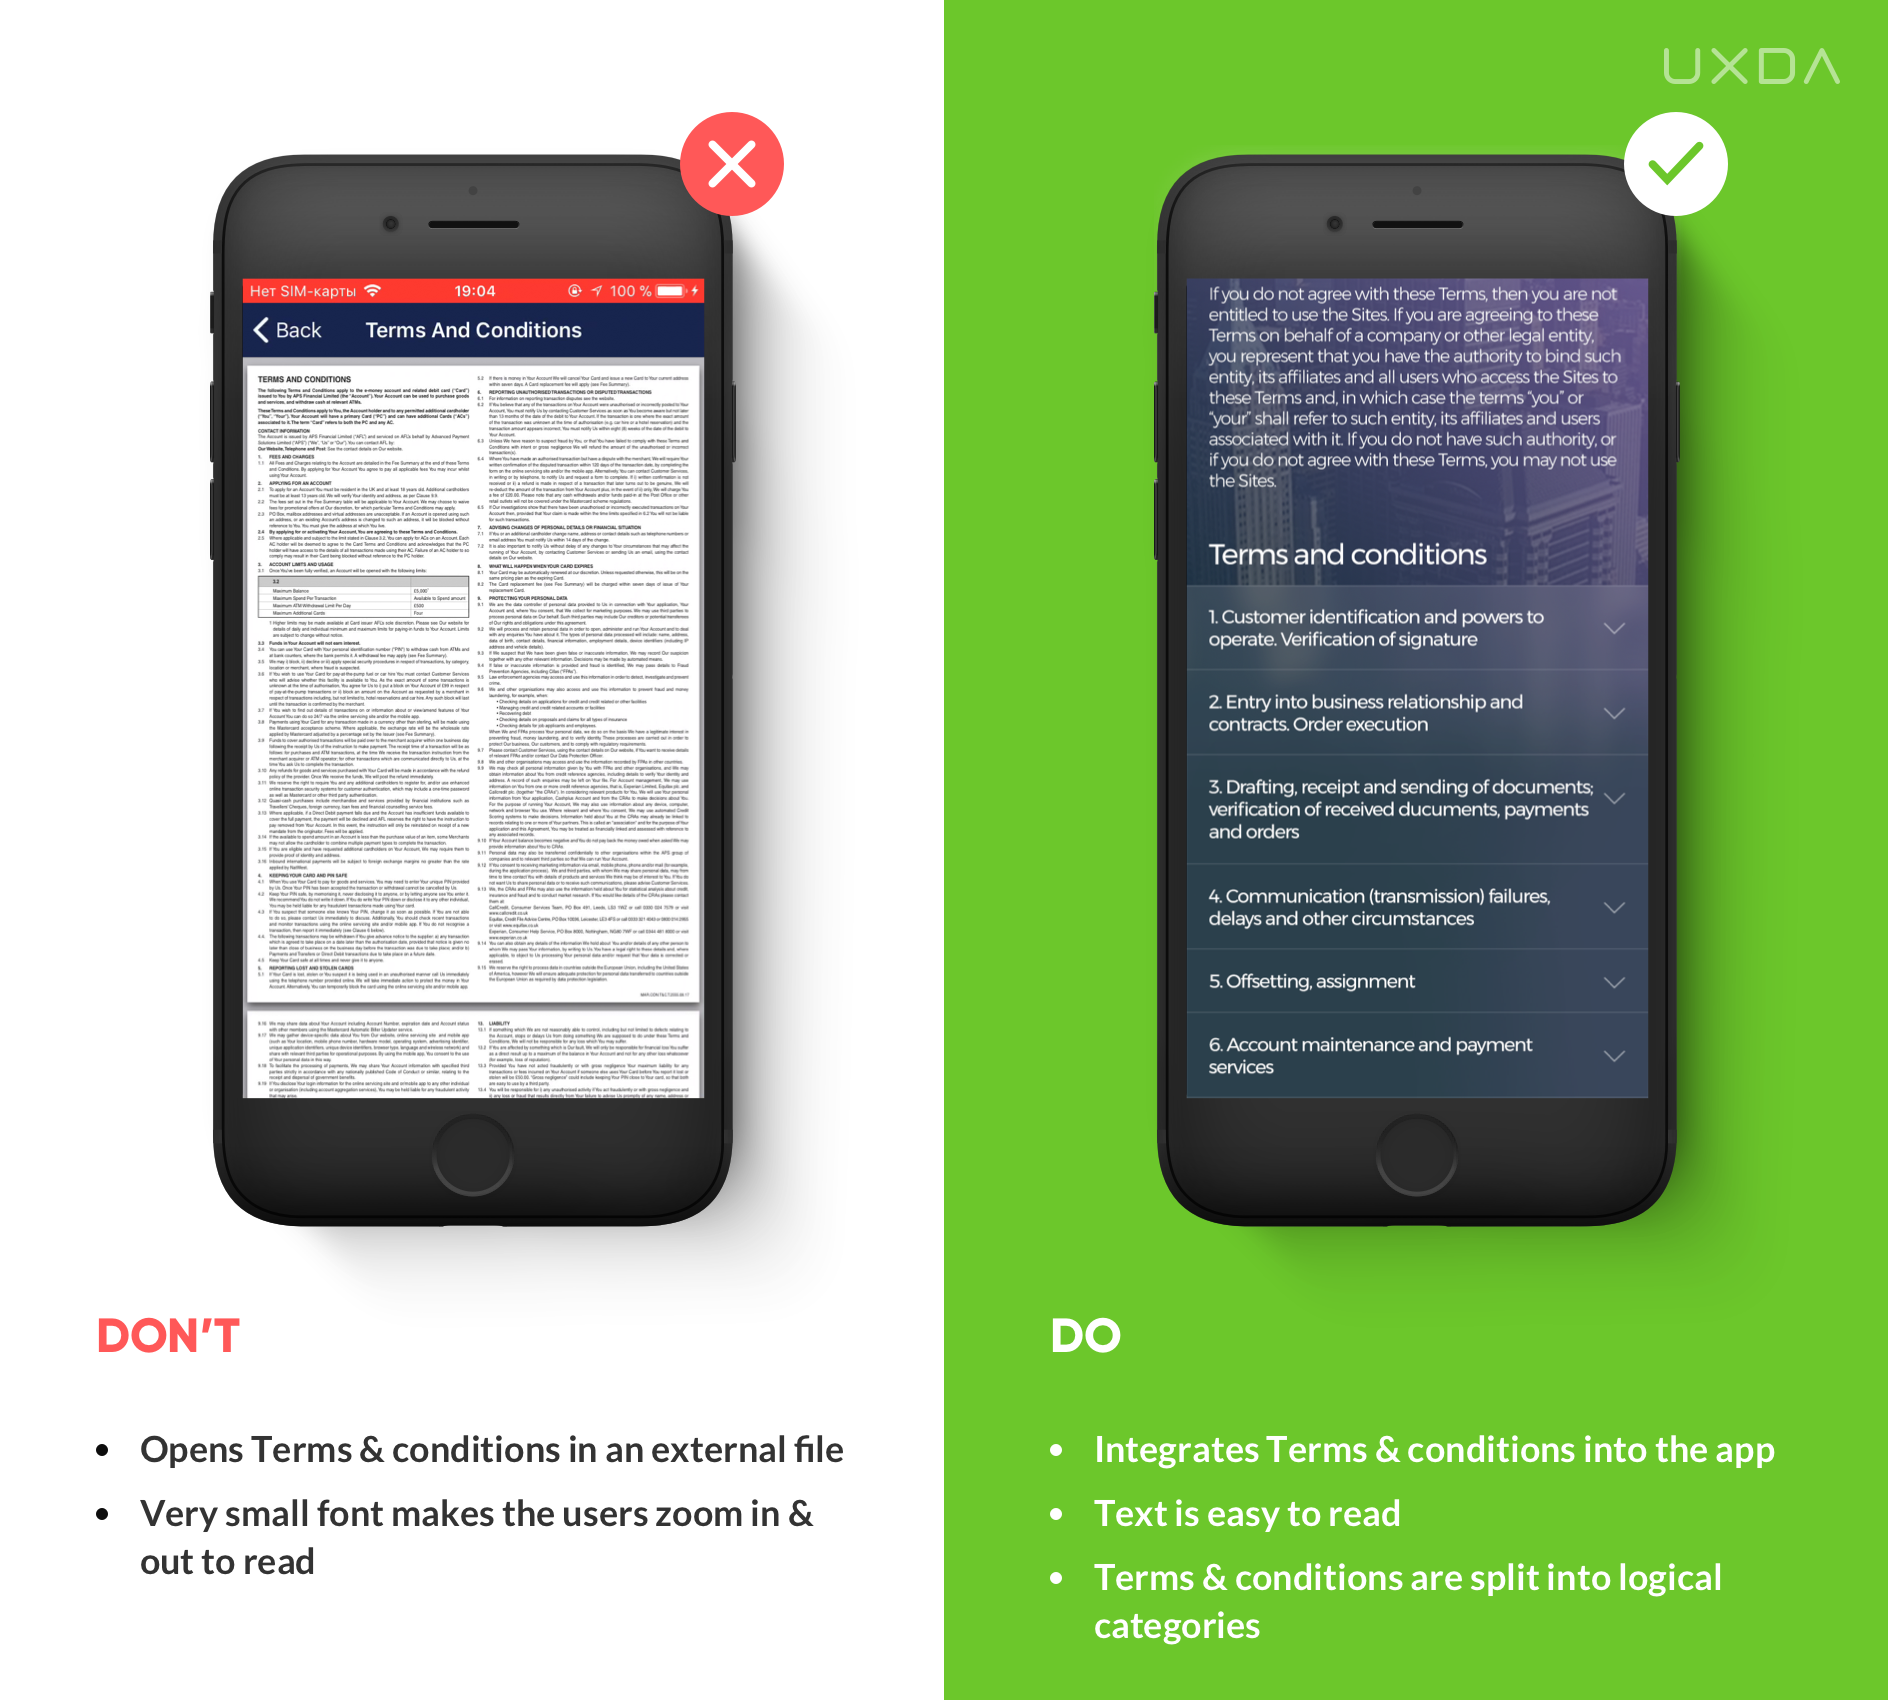 financial-ux-design-for-financial-app-m-3-conditions.png